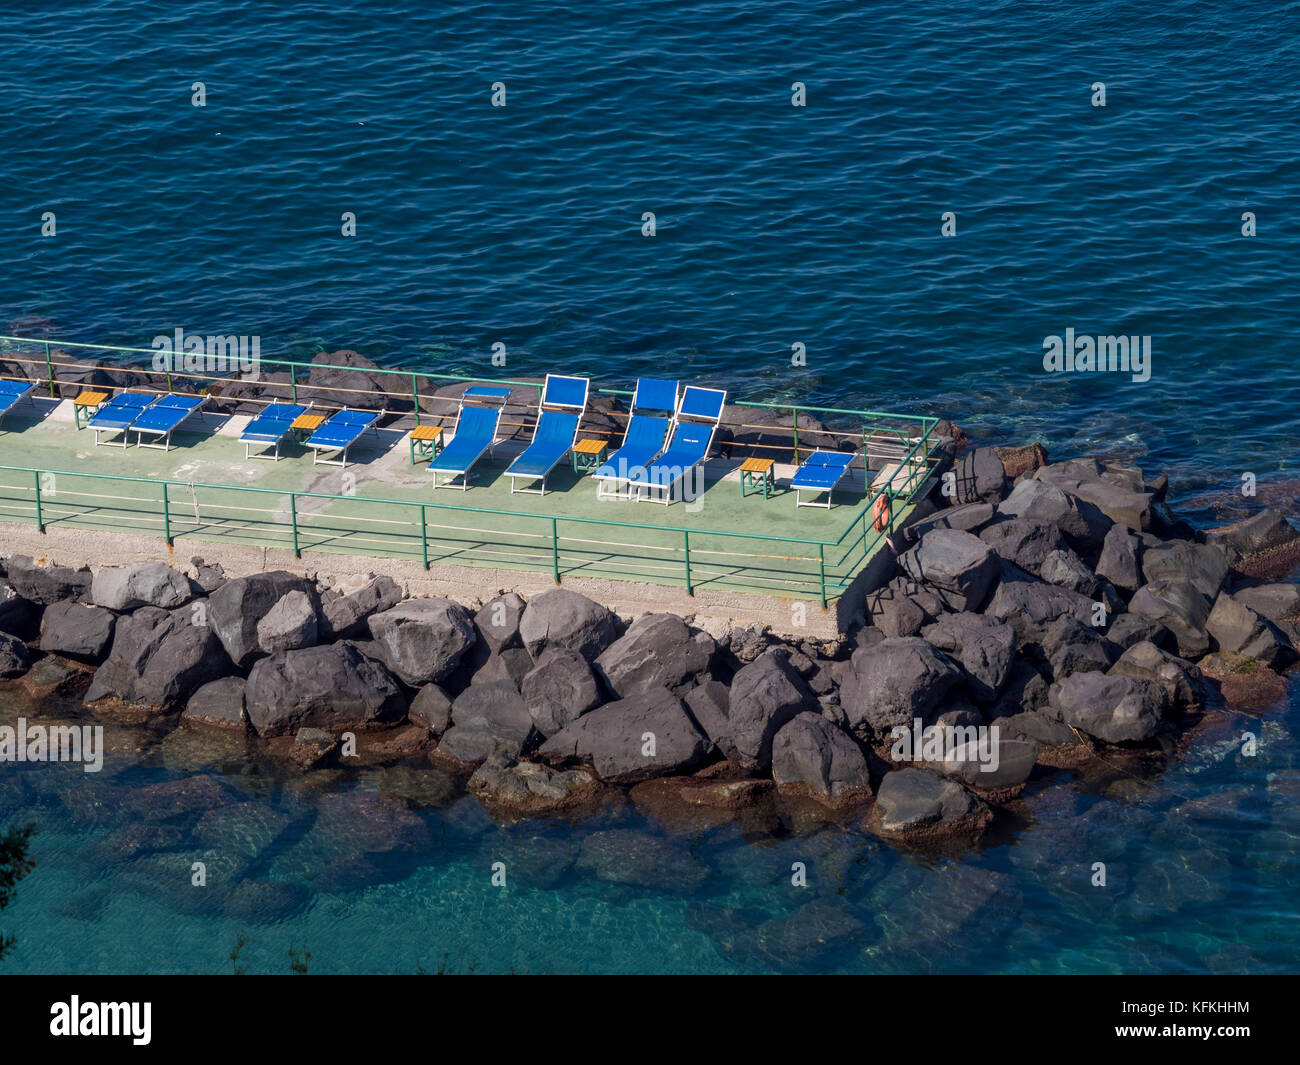 Empty sun loungers on sunbathing deck surrounded by the Mediterranean Sea. Sorrento, Italy. - Stock Image